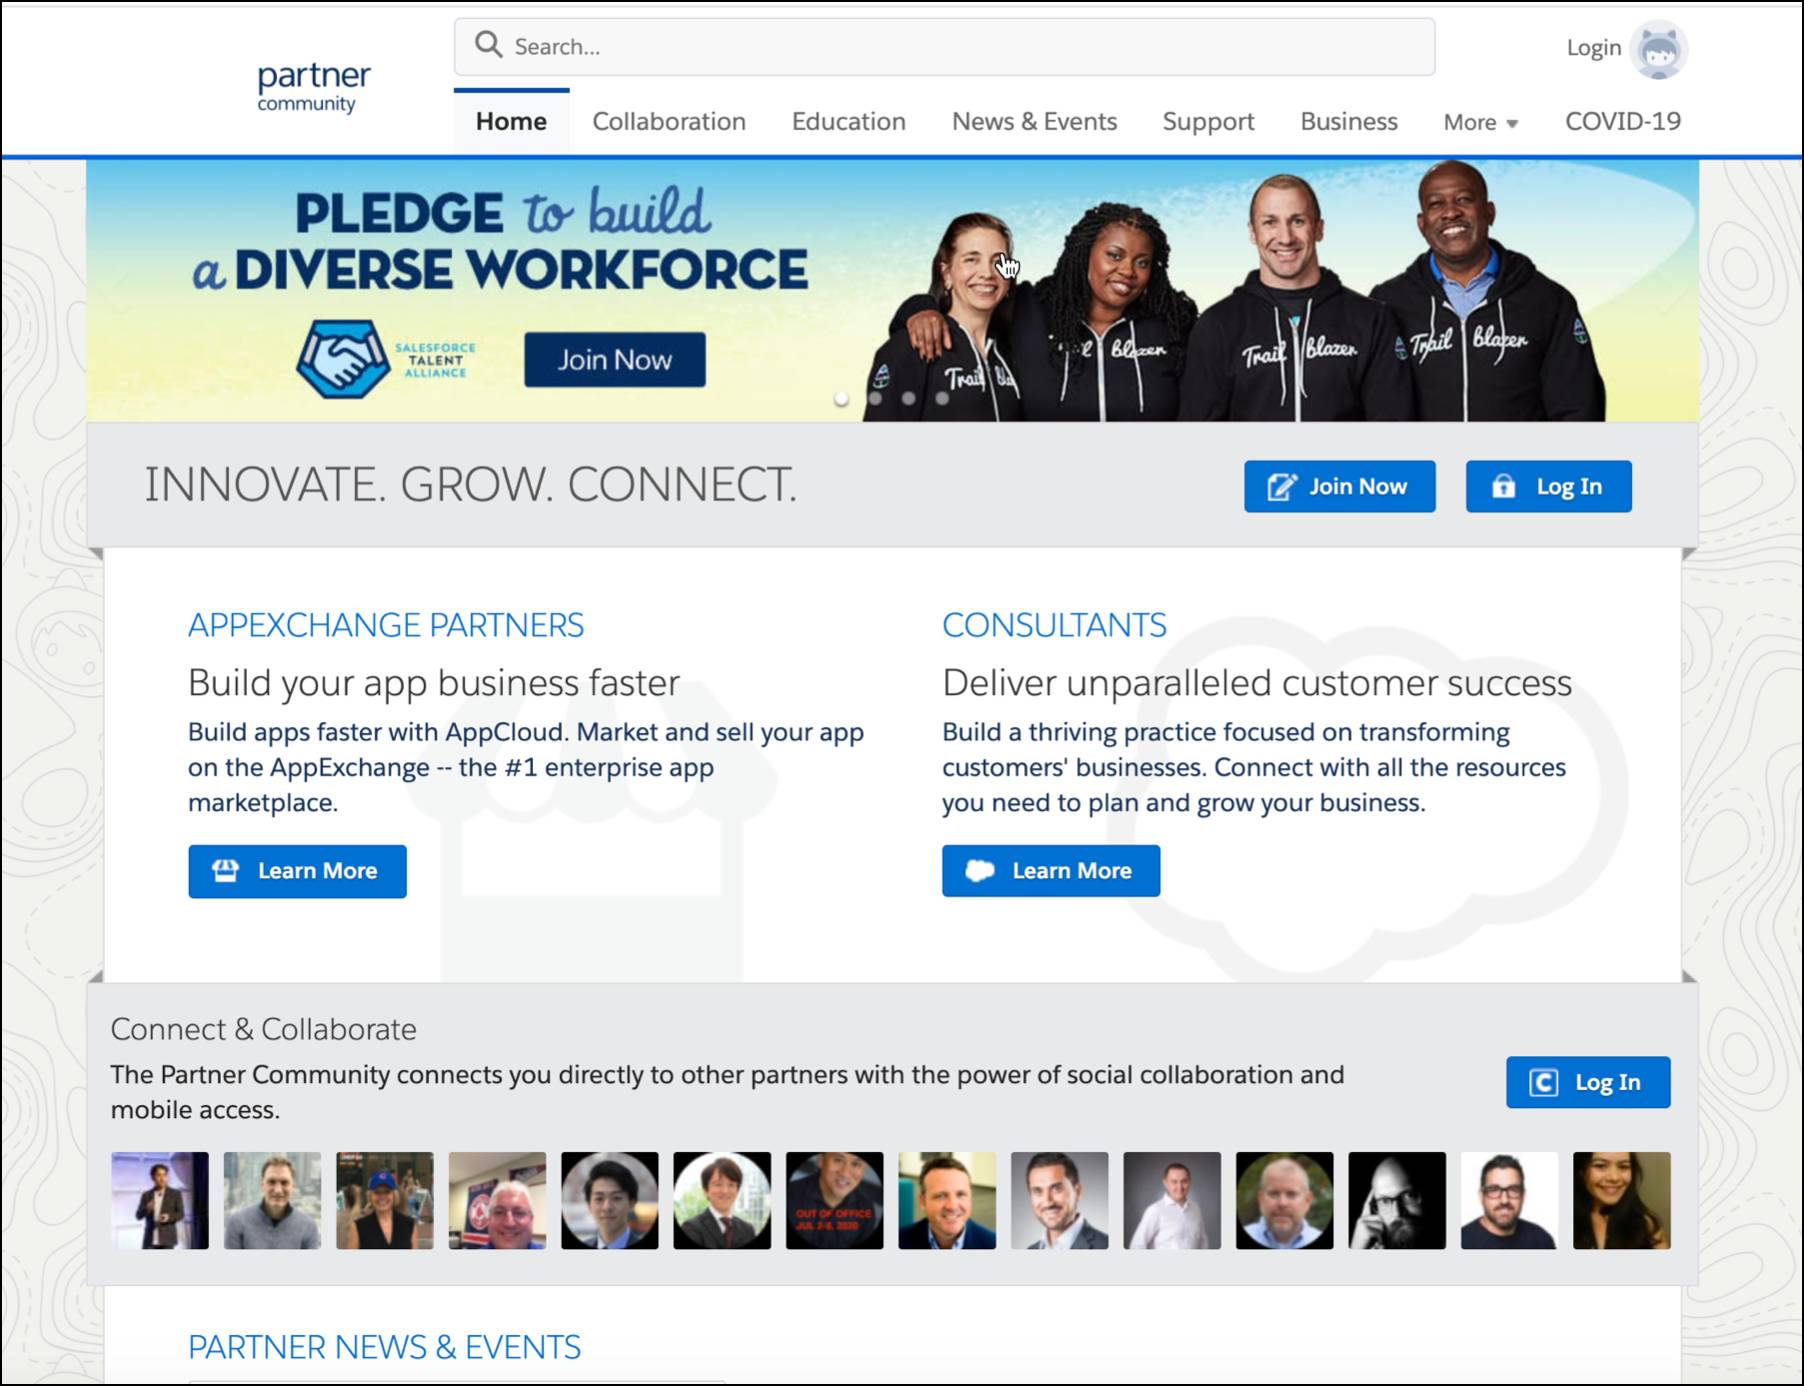 Join the Salesforce Partner Community to get answers, share ideas, and learn best practices.